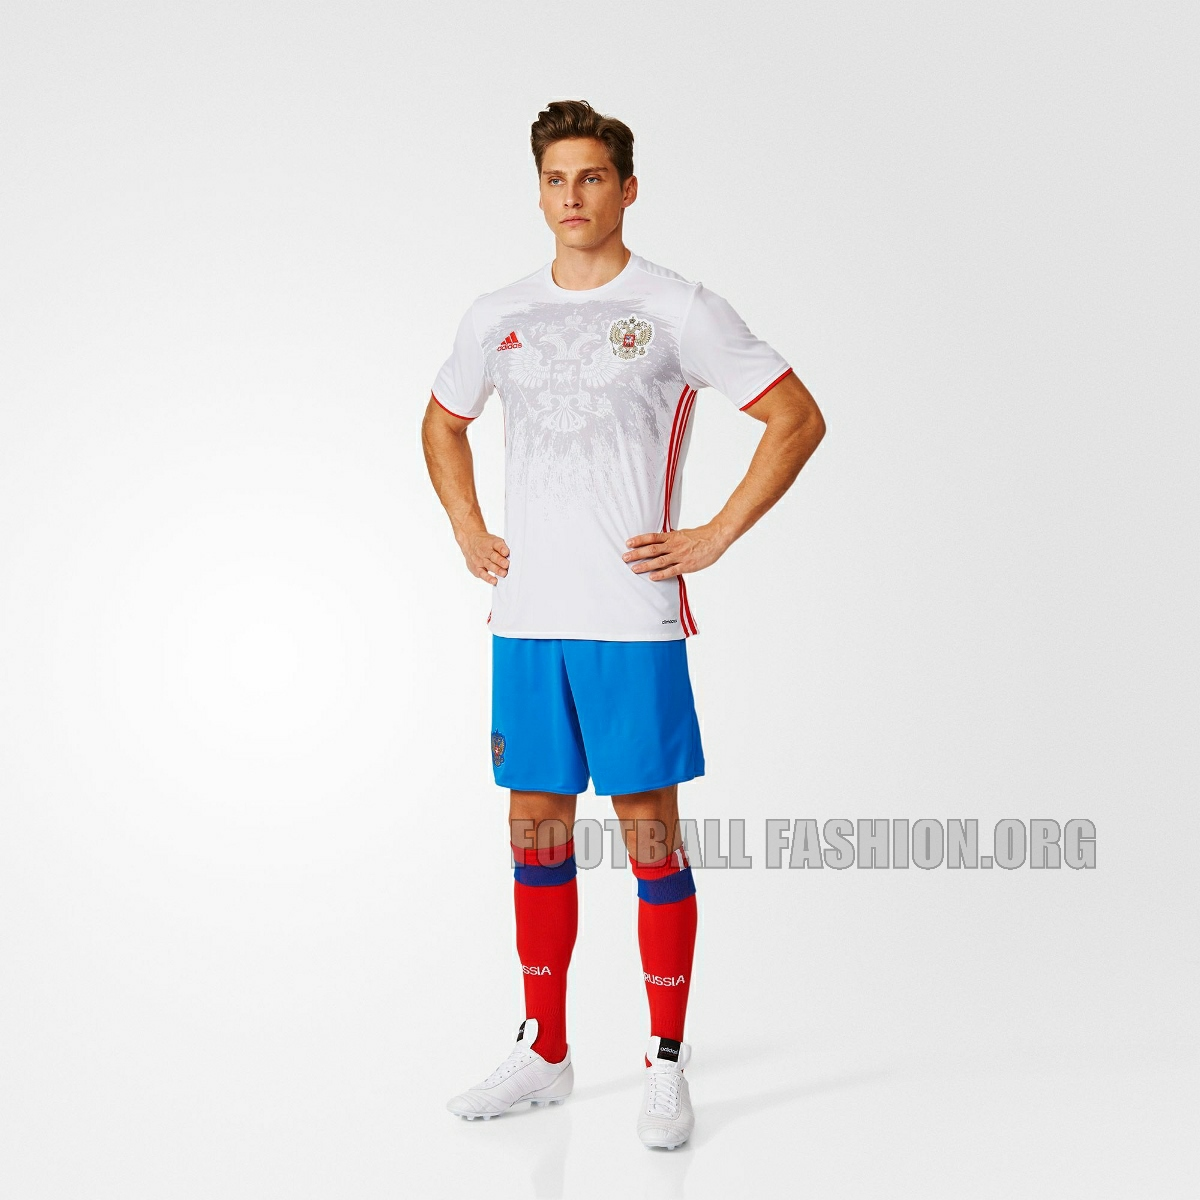 size 40 998ad 4ab79 Russia EURO 2016 adidas Home and Away Kits - FOOTBALL ...